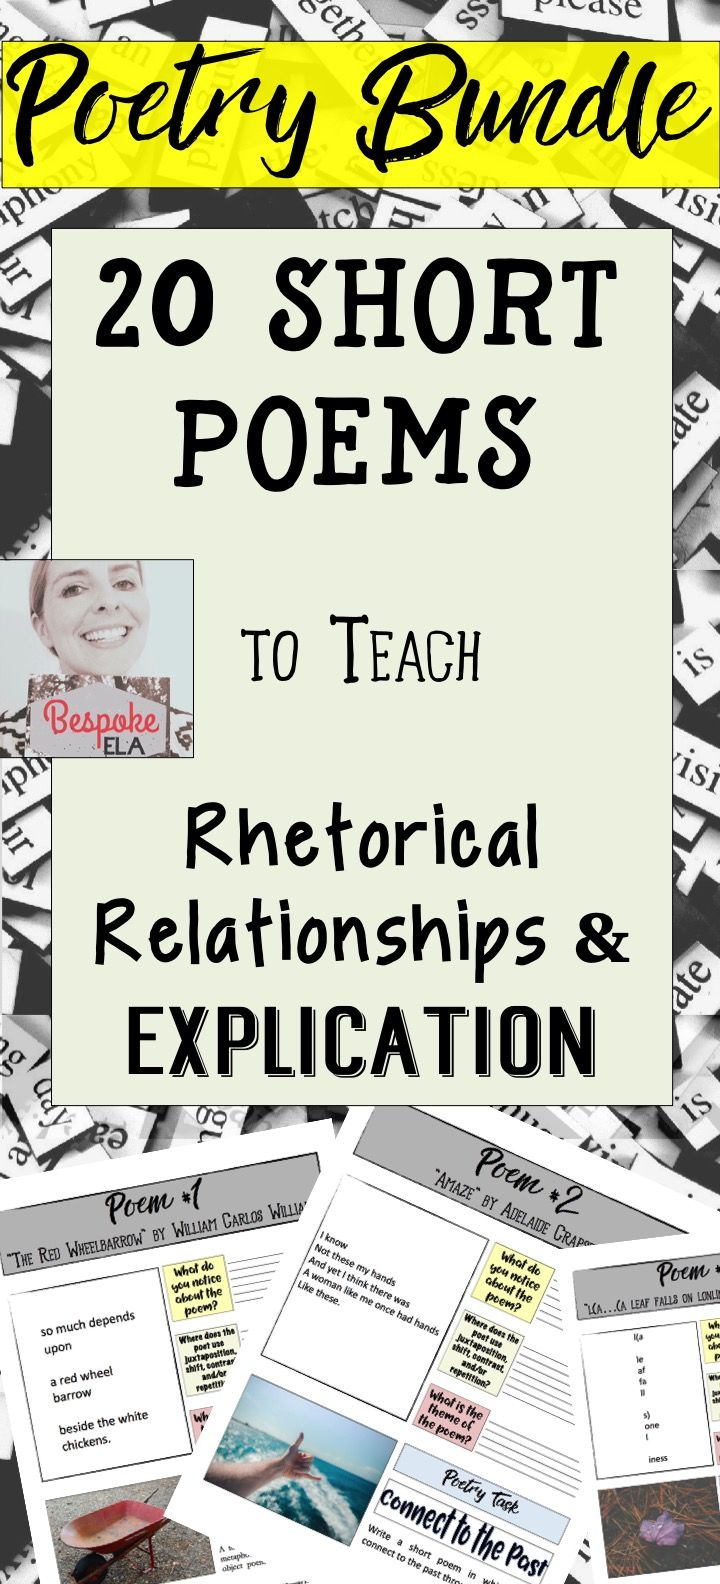 This product by Bespoke ELA contains 20 short poems to analyze for the four, basic rhetorical relationships: juxtaposition, contrast, shift, and repetition.  Excellent for English classes in middle school and high school as mentor texts, mini-lessons, and bell ringers.  by Bespoke ELA